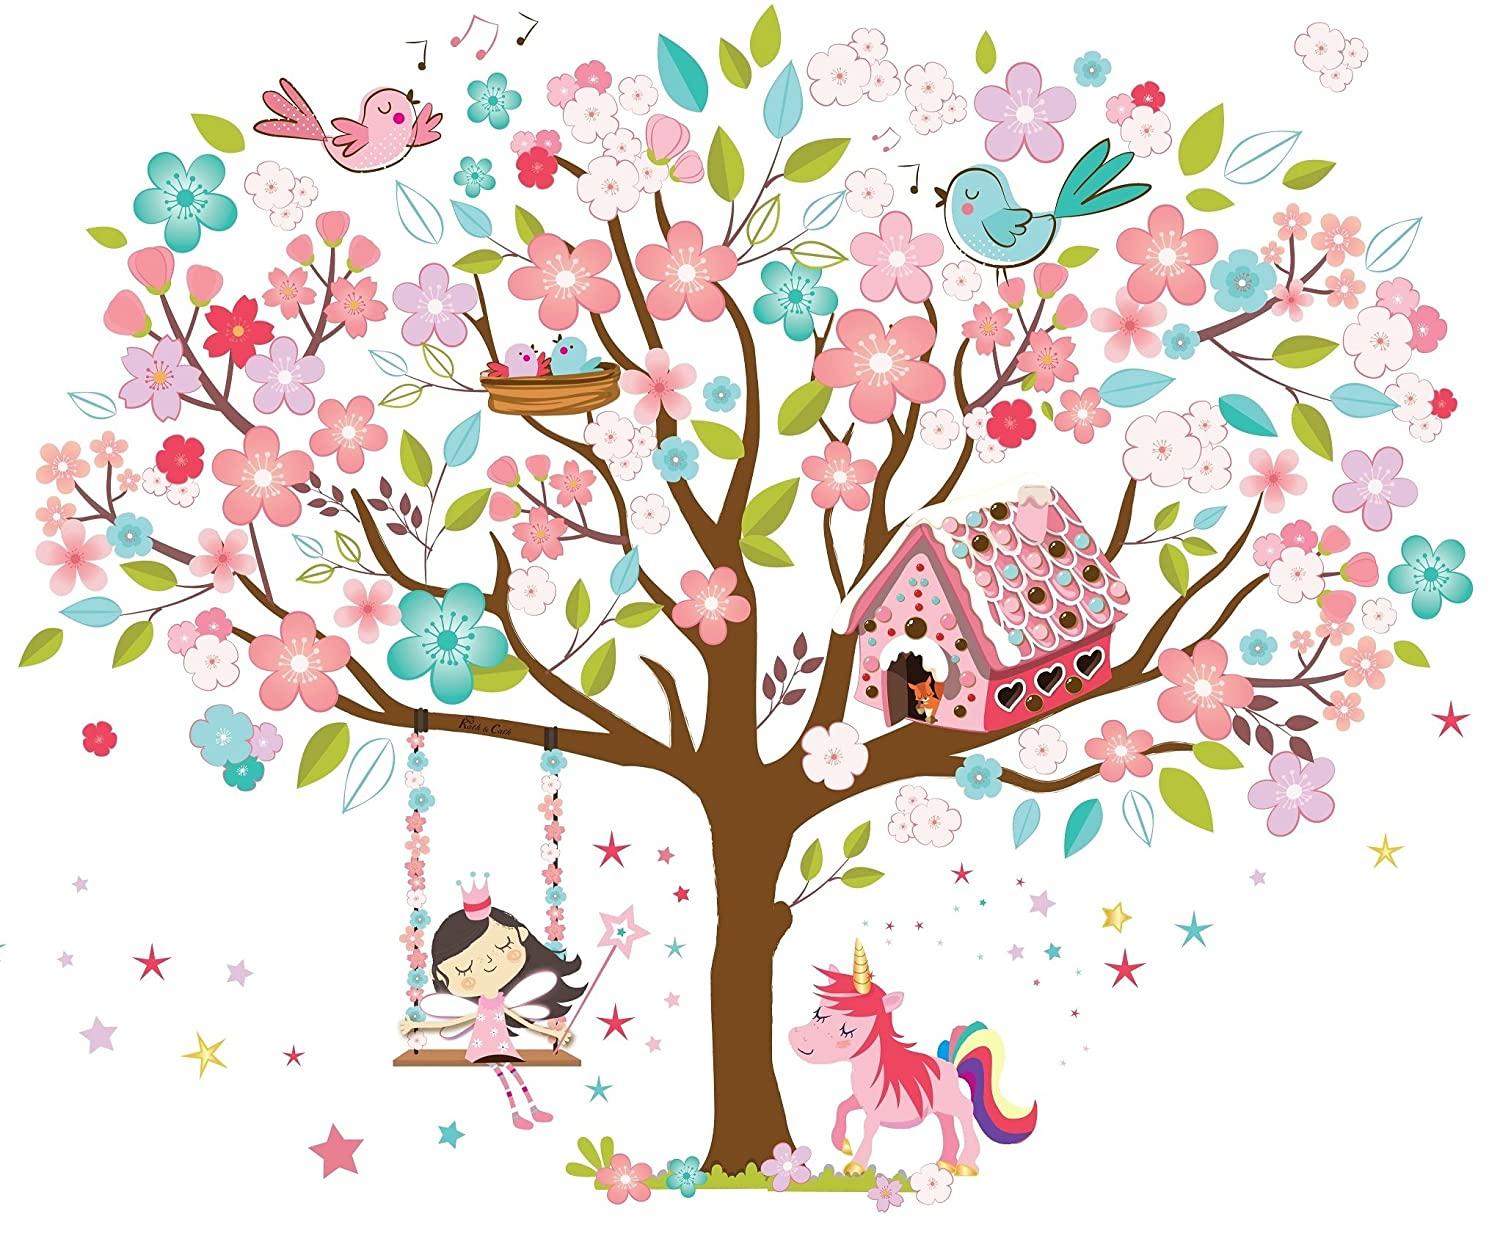 Kath Cath Rainbow Unicorn Pink Fairy Gingerbread House Singing Circuit Board Tree Vinyl Wall Art Graphic Stickers Decals Birds And Cherry Blossoms Kids Girls Room Removable Self Adhesive Multi Colour Mural Home